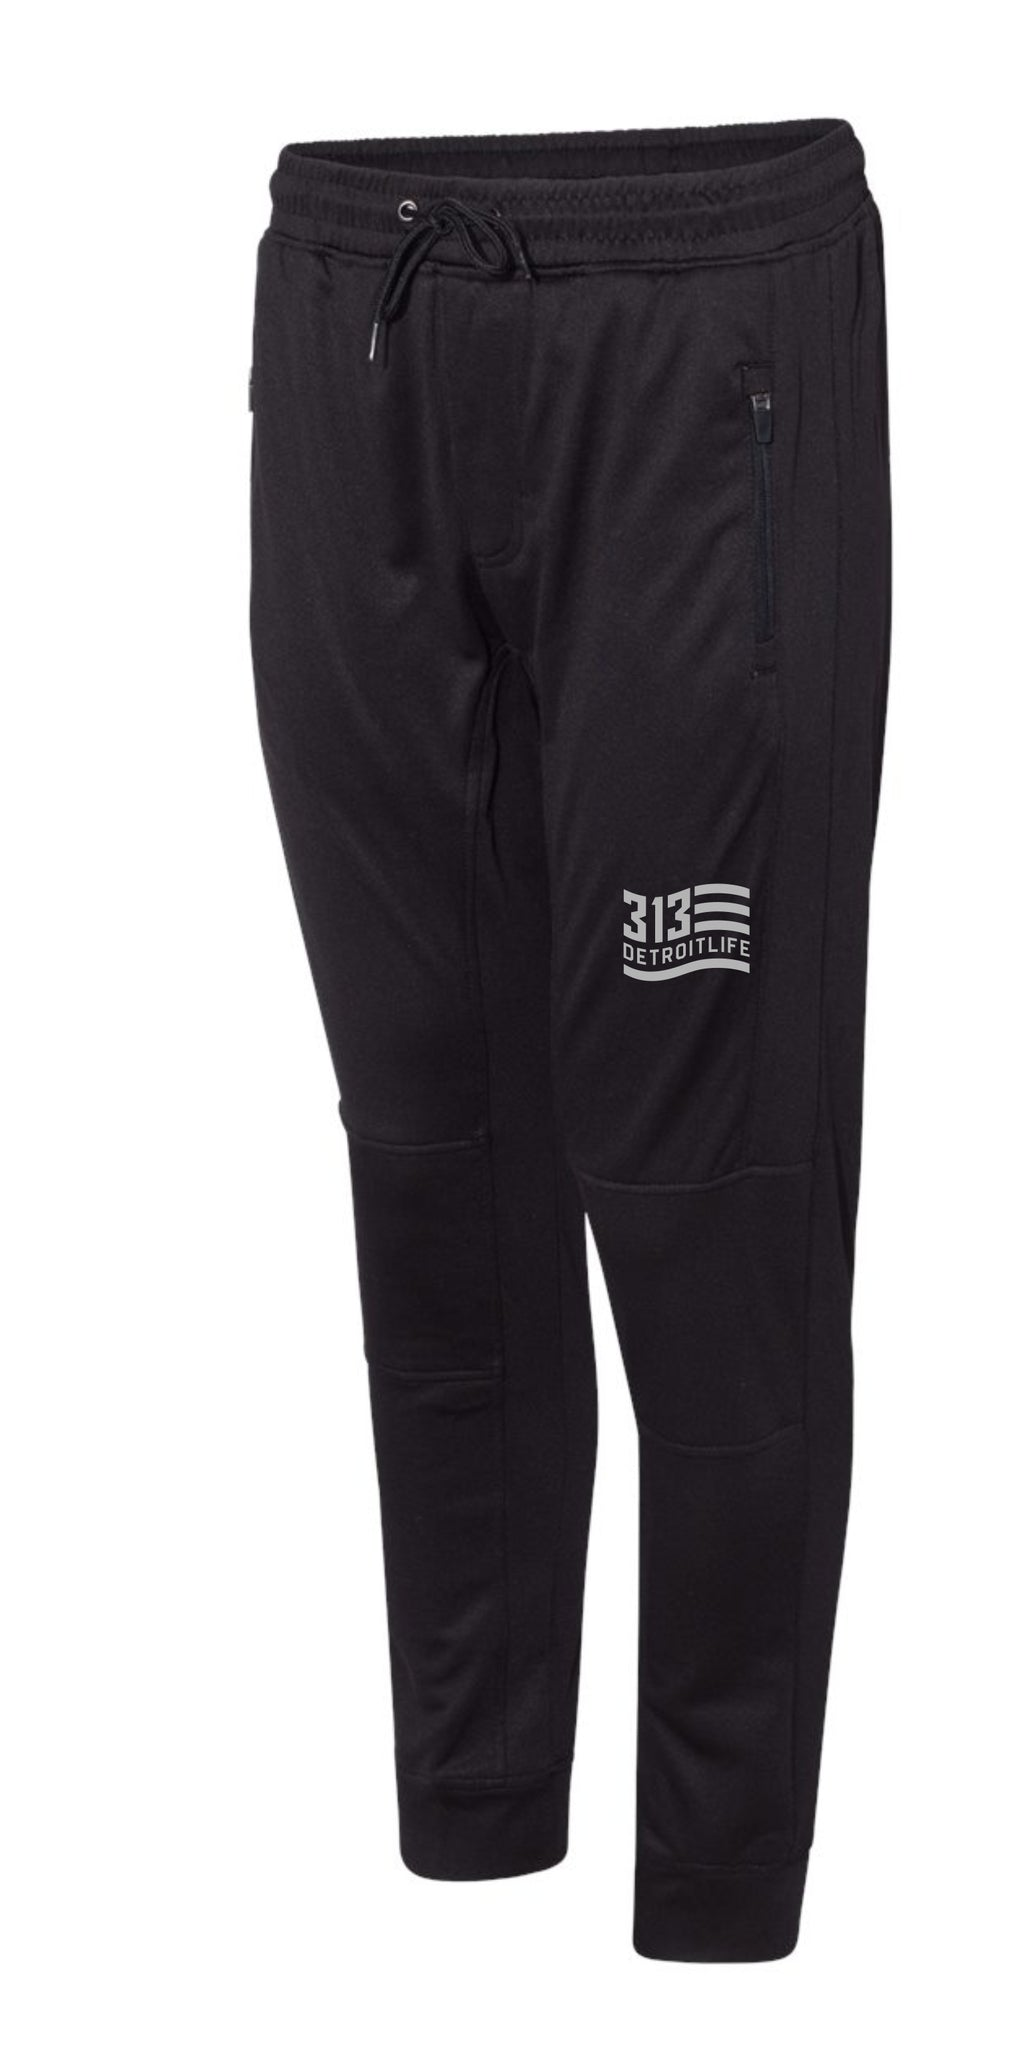 313 FLAG JOGGERS